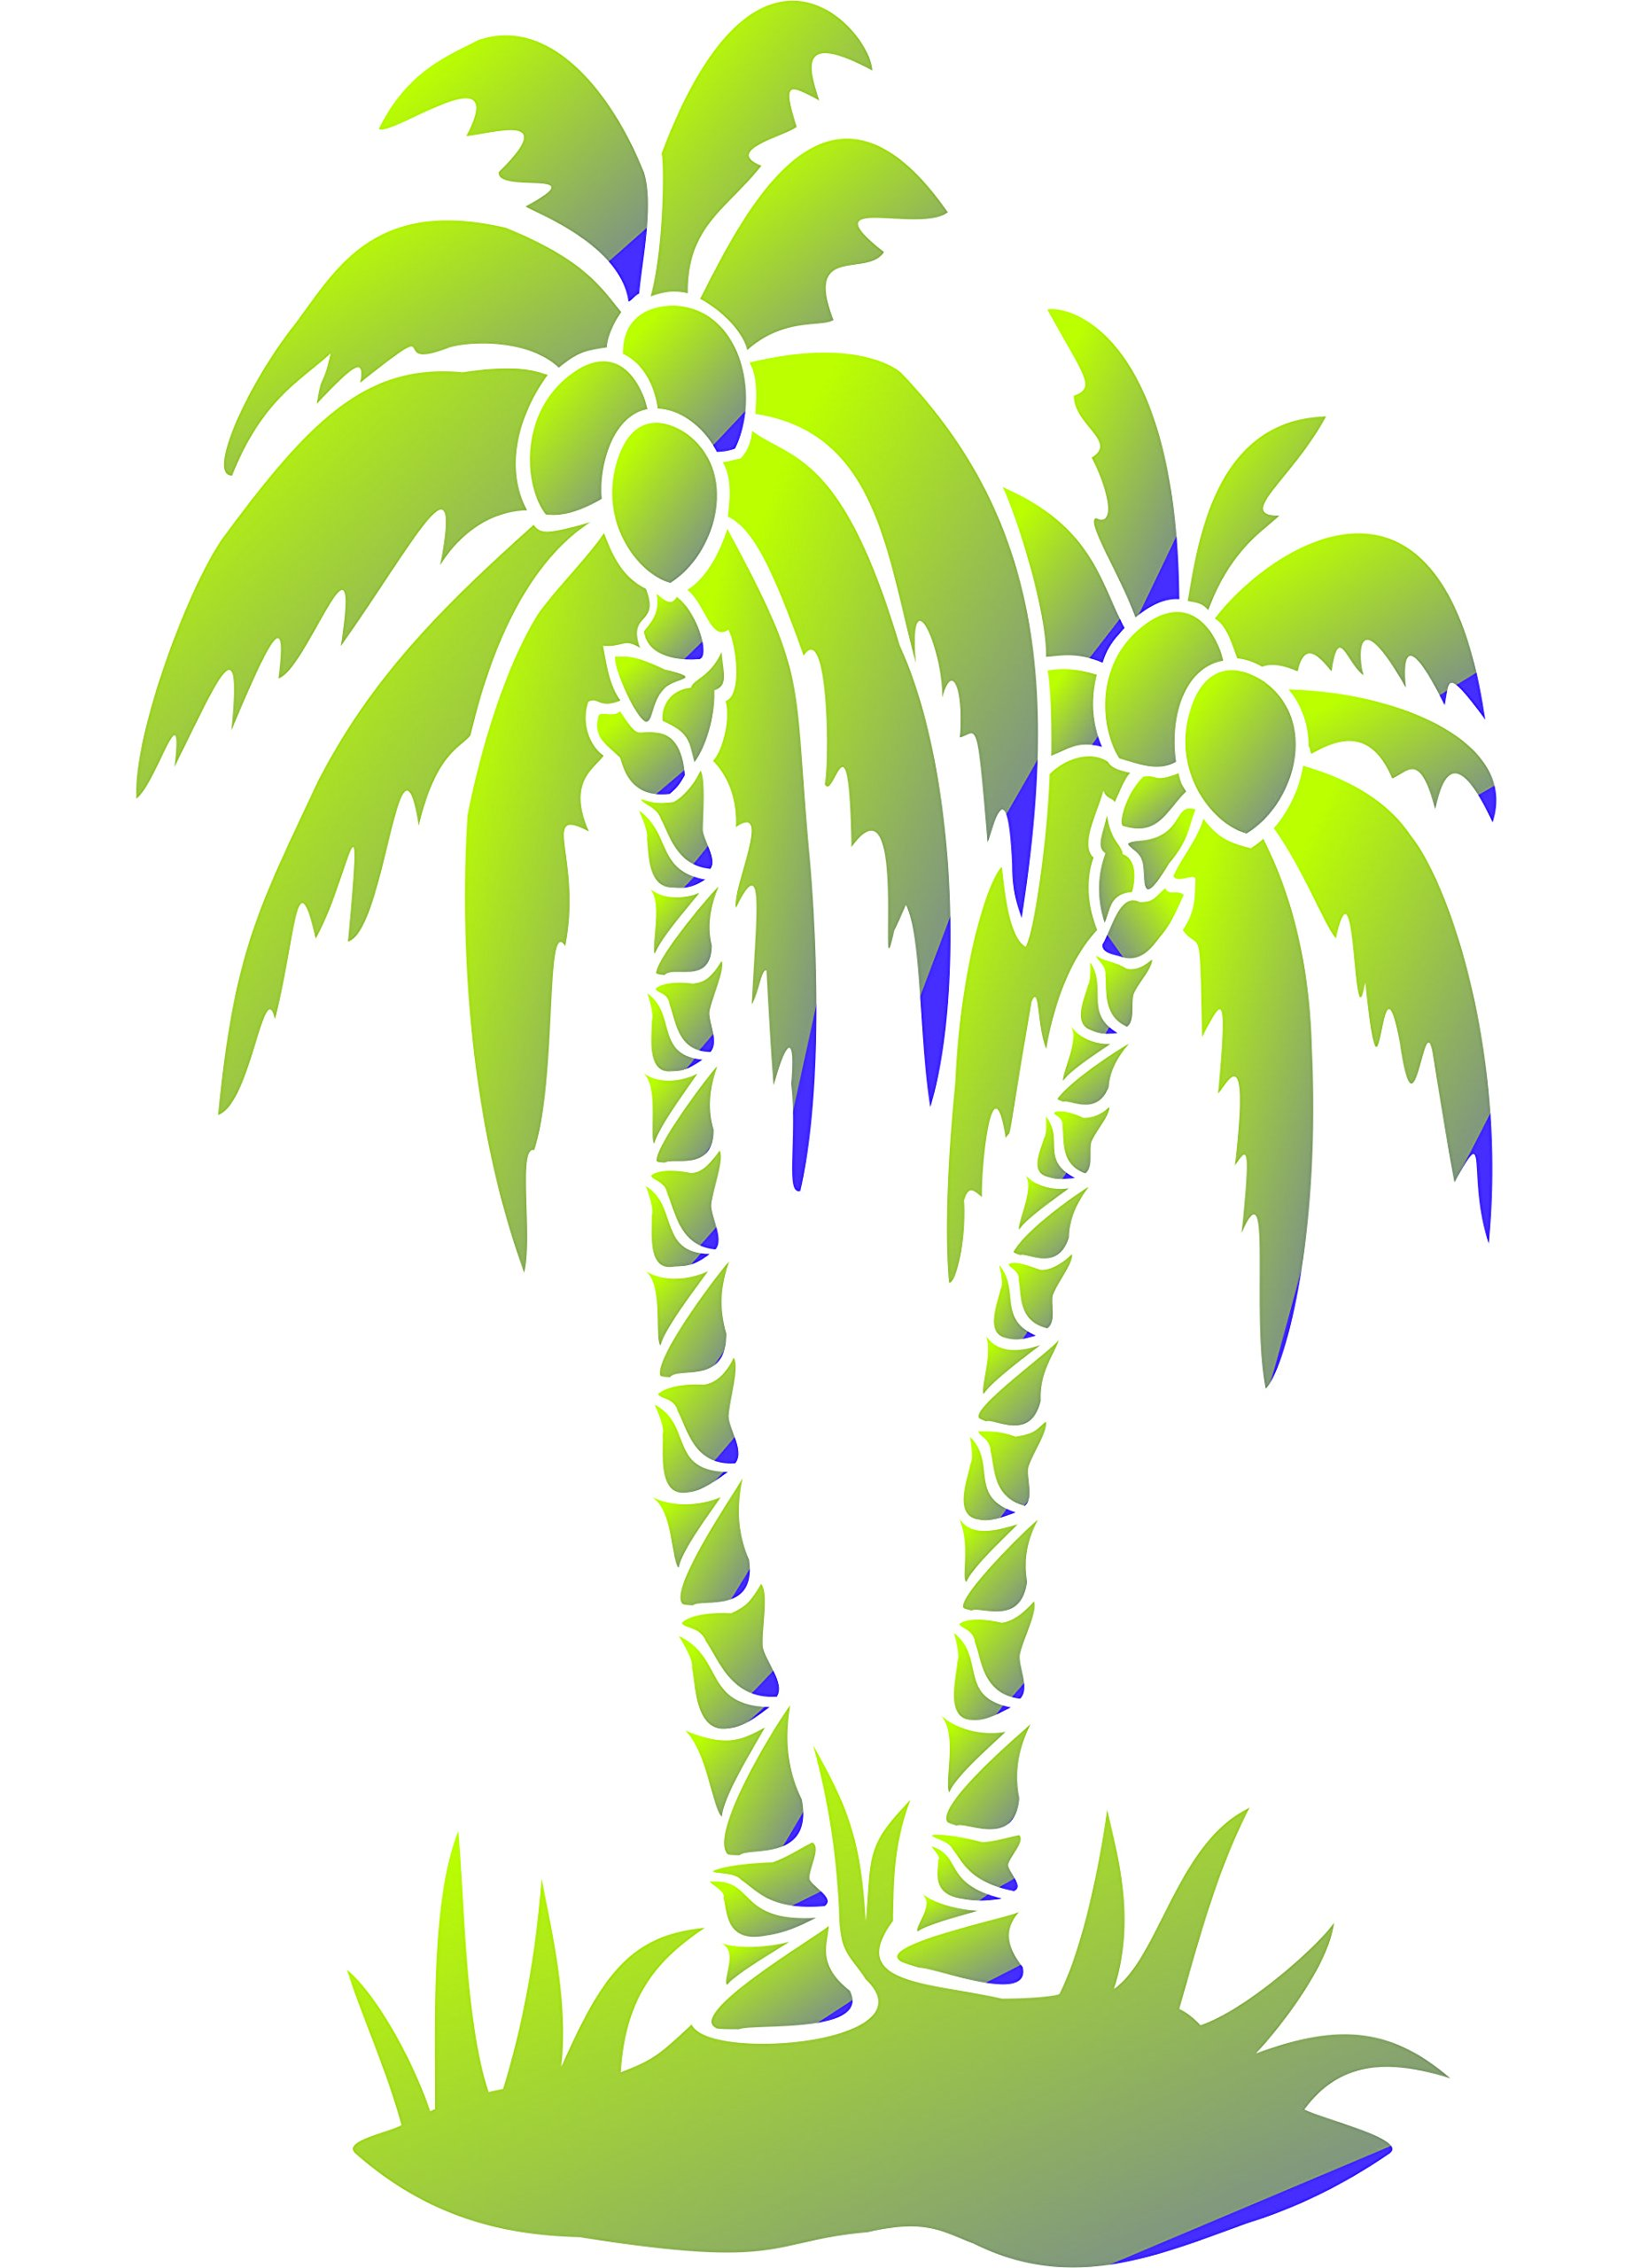 Palm Trees Stencil - (size 10''w x 14''h) Reusable Wall Stencils for Painting - Best Quality Wall Art Décor Ideas - Use on Walls, Floors, Fabrics, Glass, Wood, Terracotta, and More... by Stencils for Walls